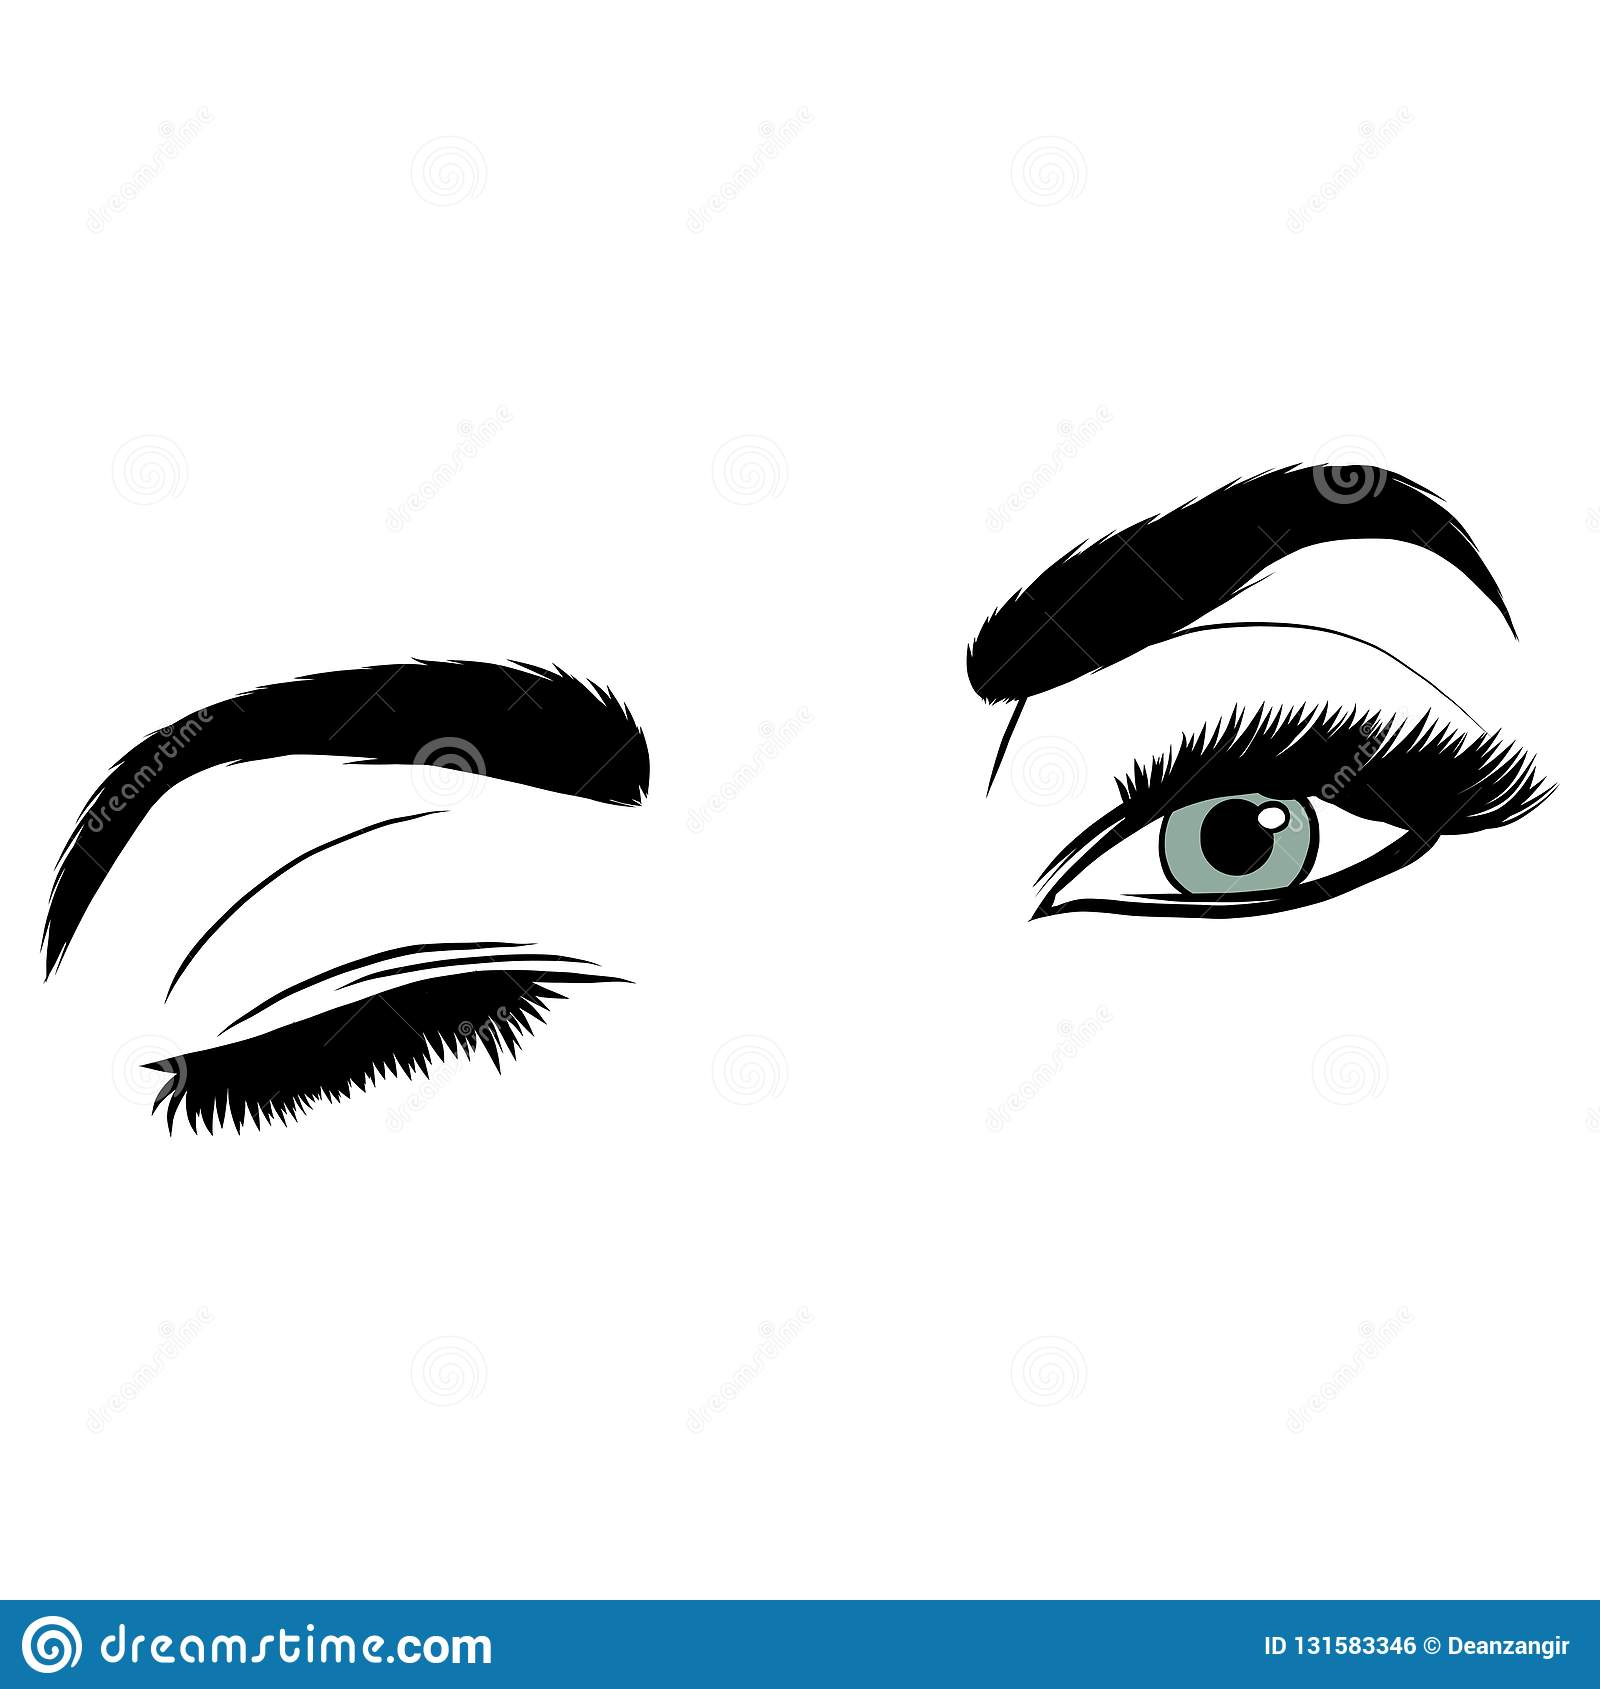 f99619cd617 Illustration with woman s eye wink, eyebrows and eyelashes. Makeup Look.